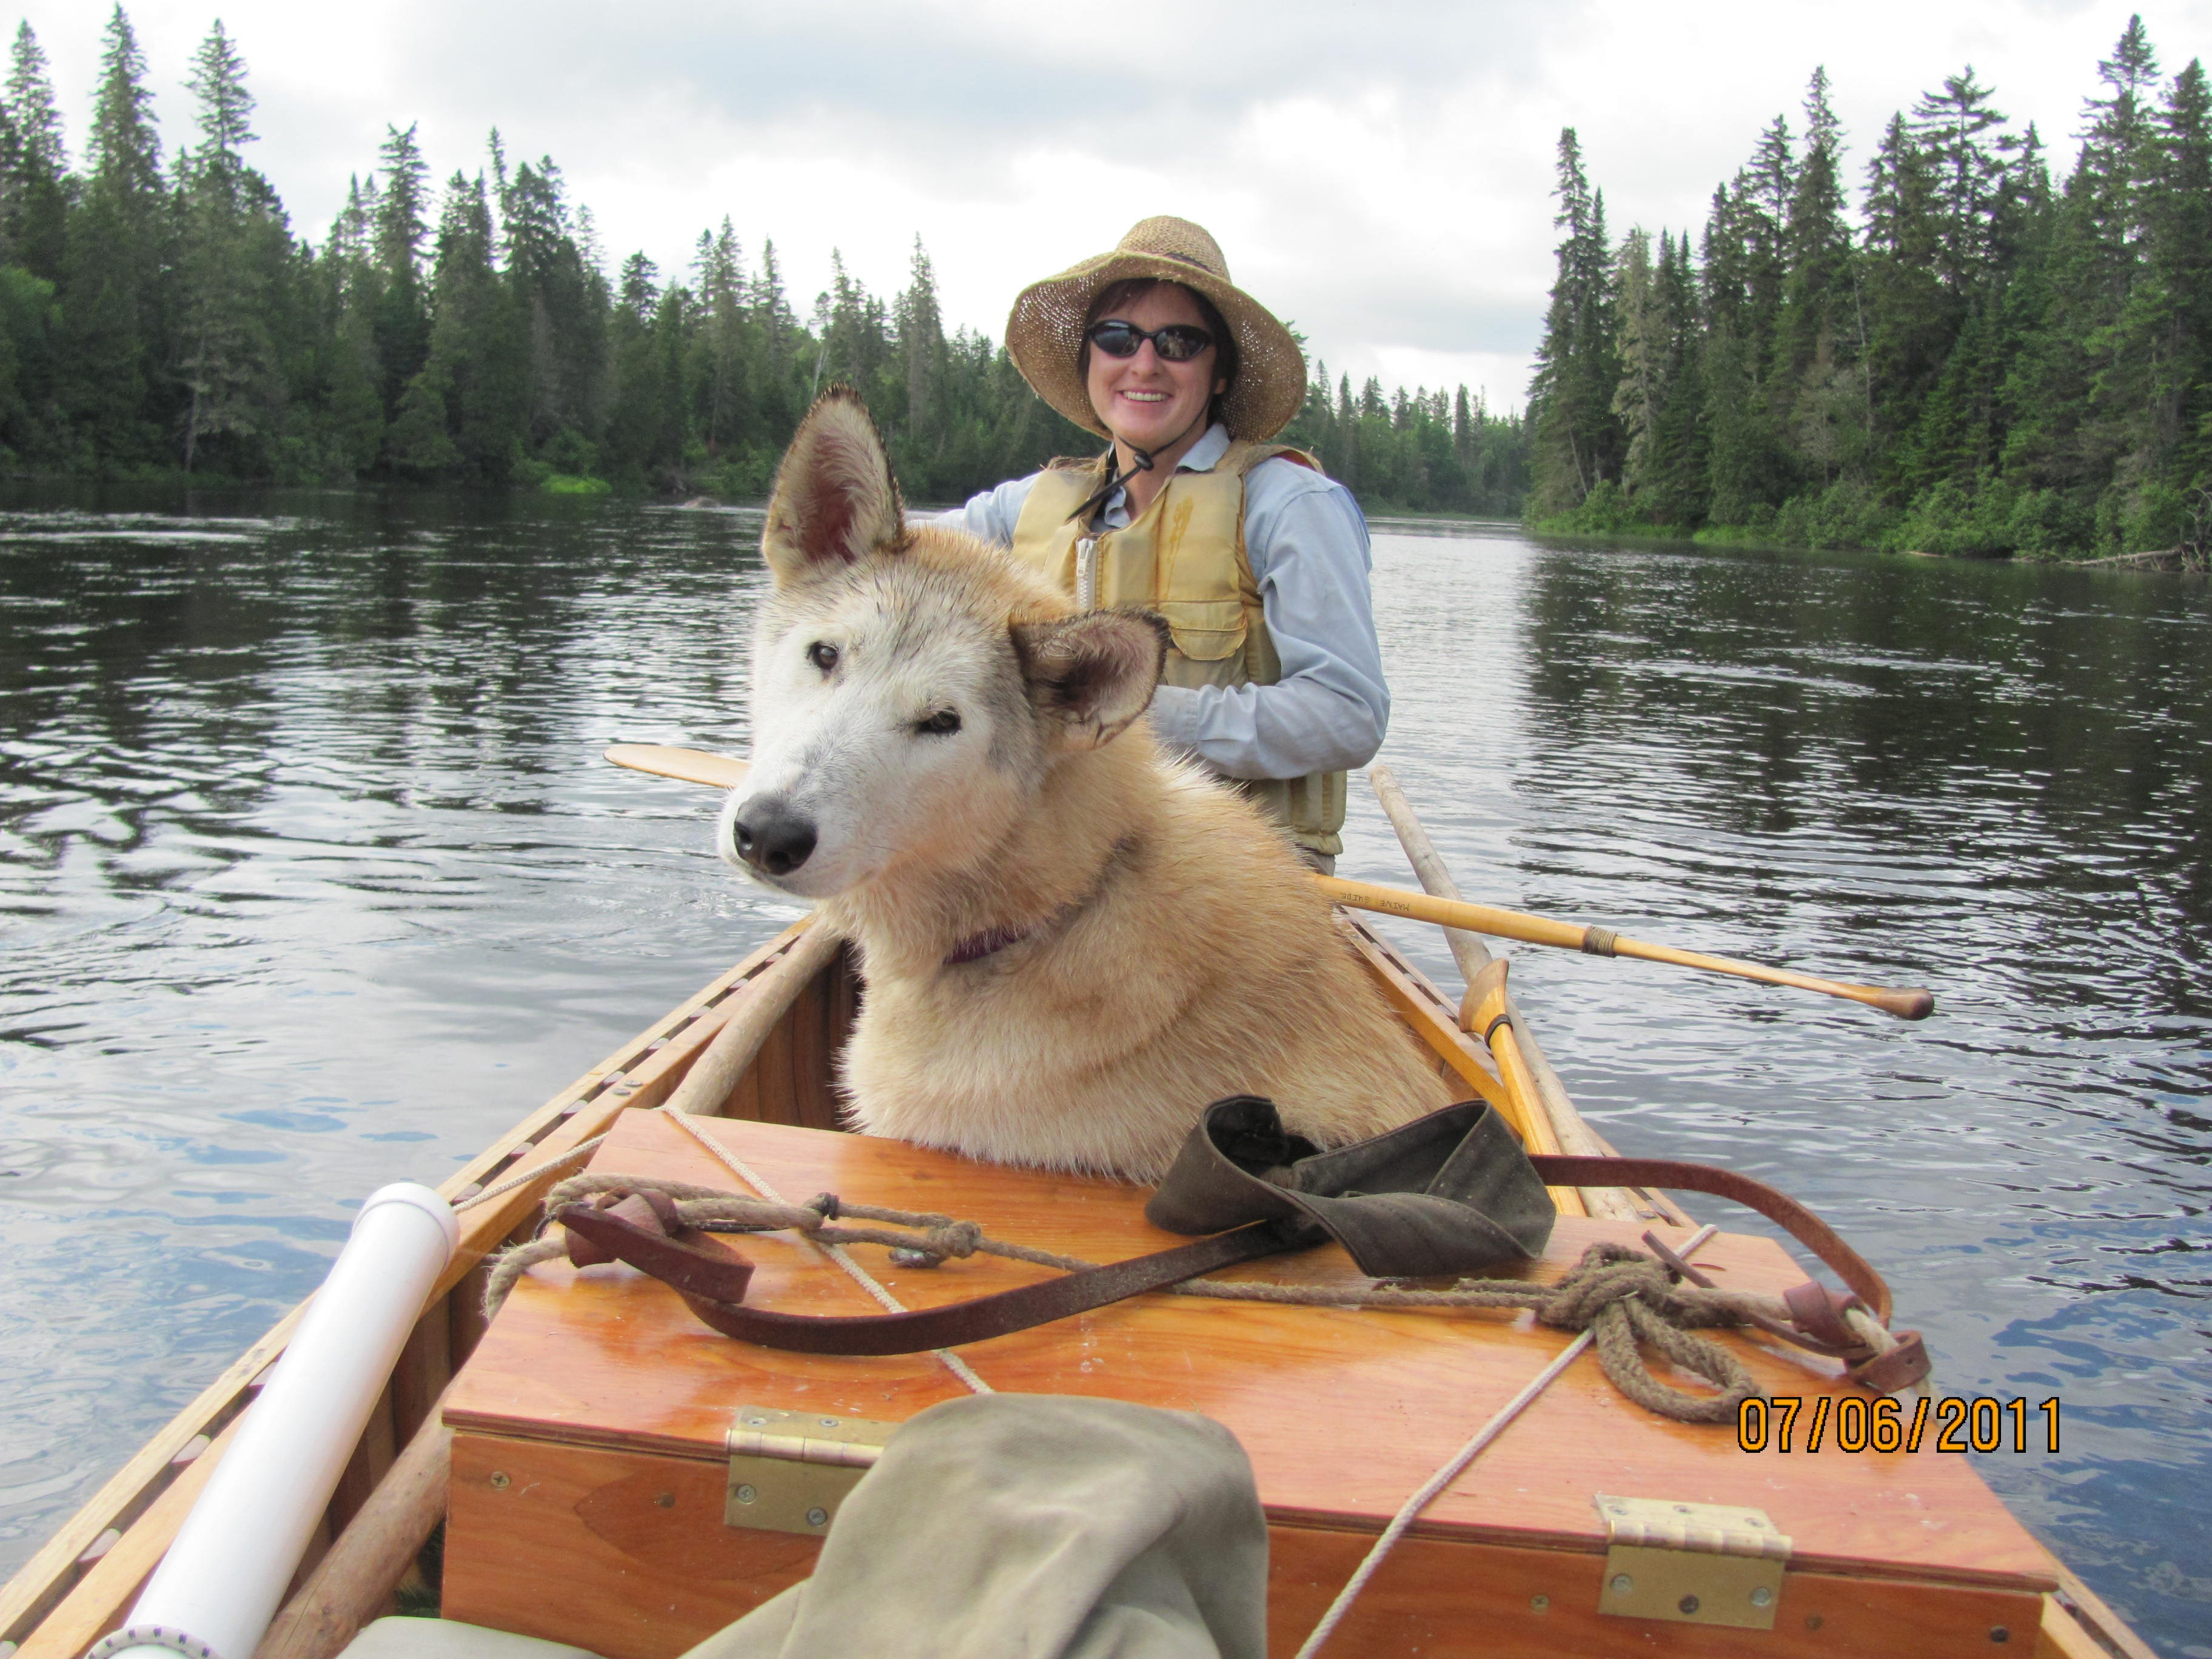 Vixen, one of our sled dogs, enjoys a relaxing canoe ride. Often times, one of the dogs will come with us on our trips.